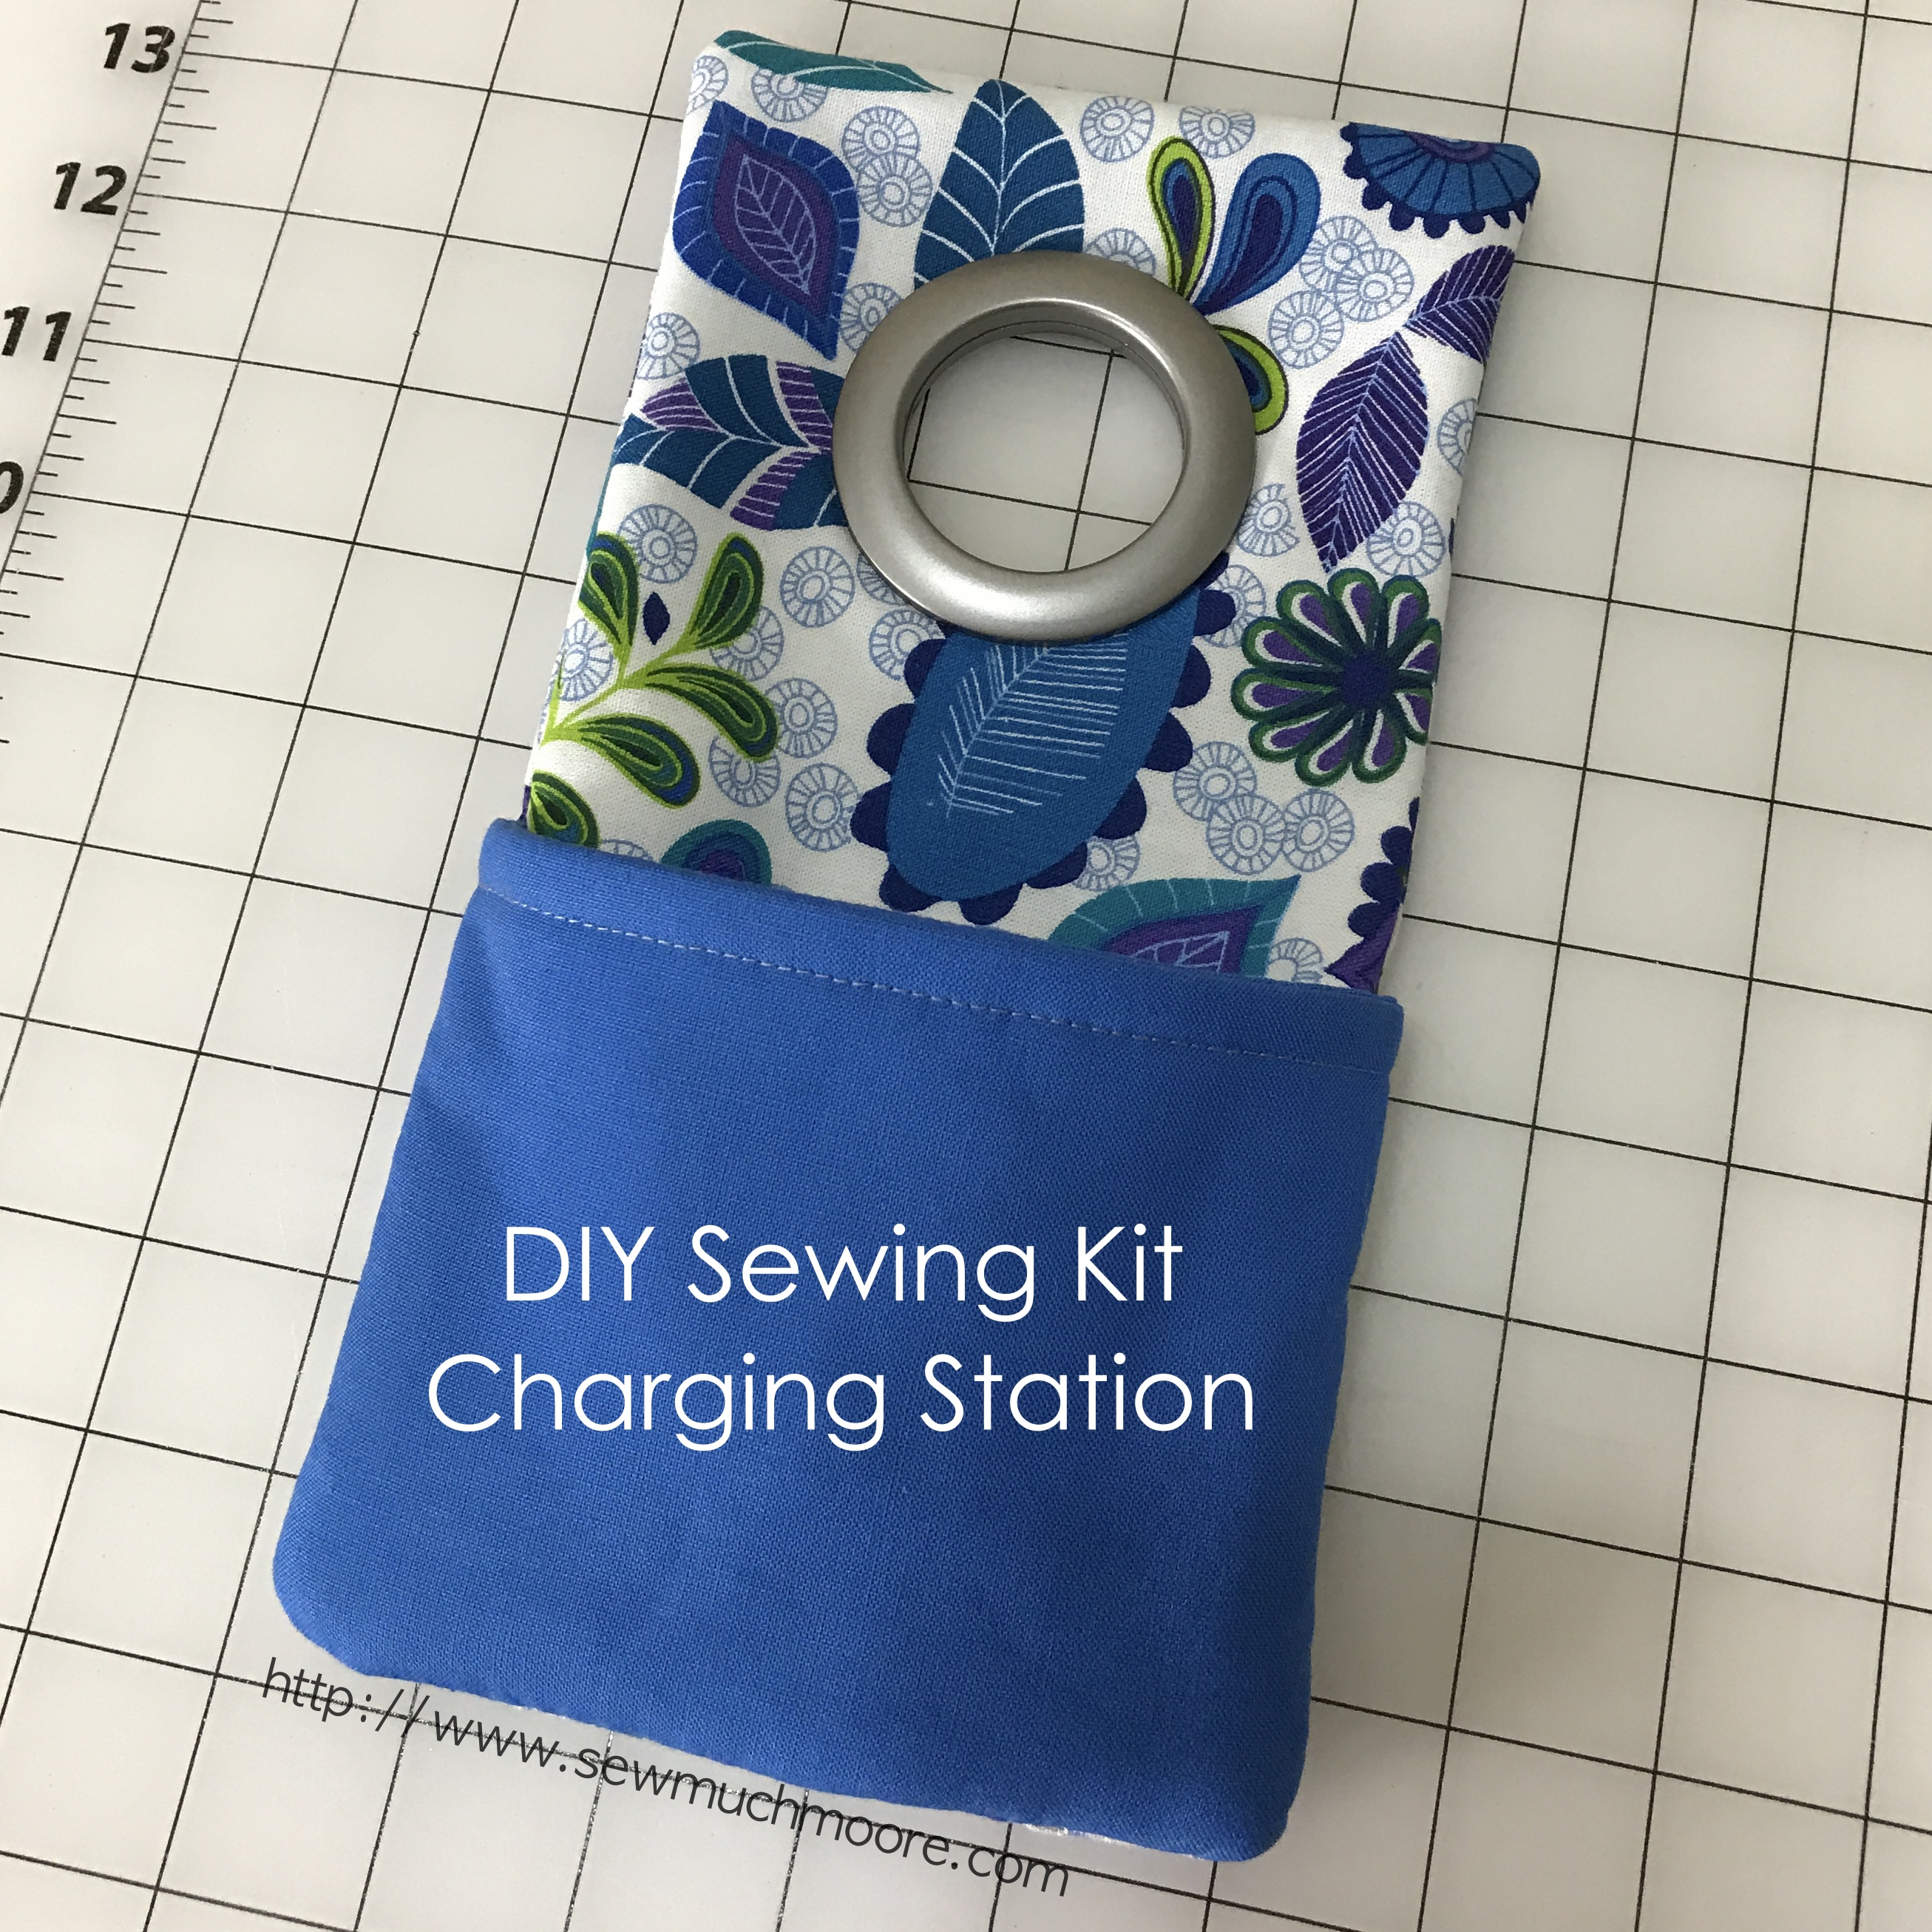 diy-sewing-kit-charging-station-15